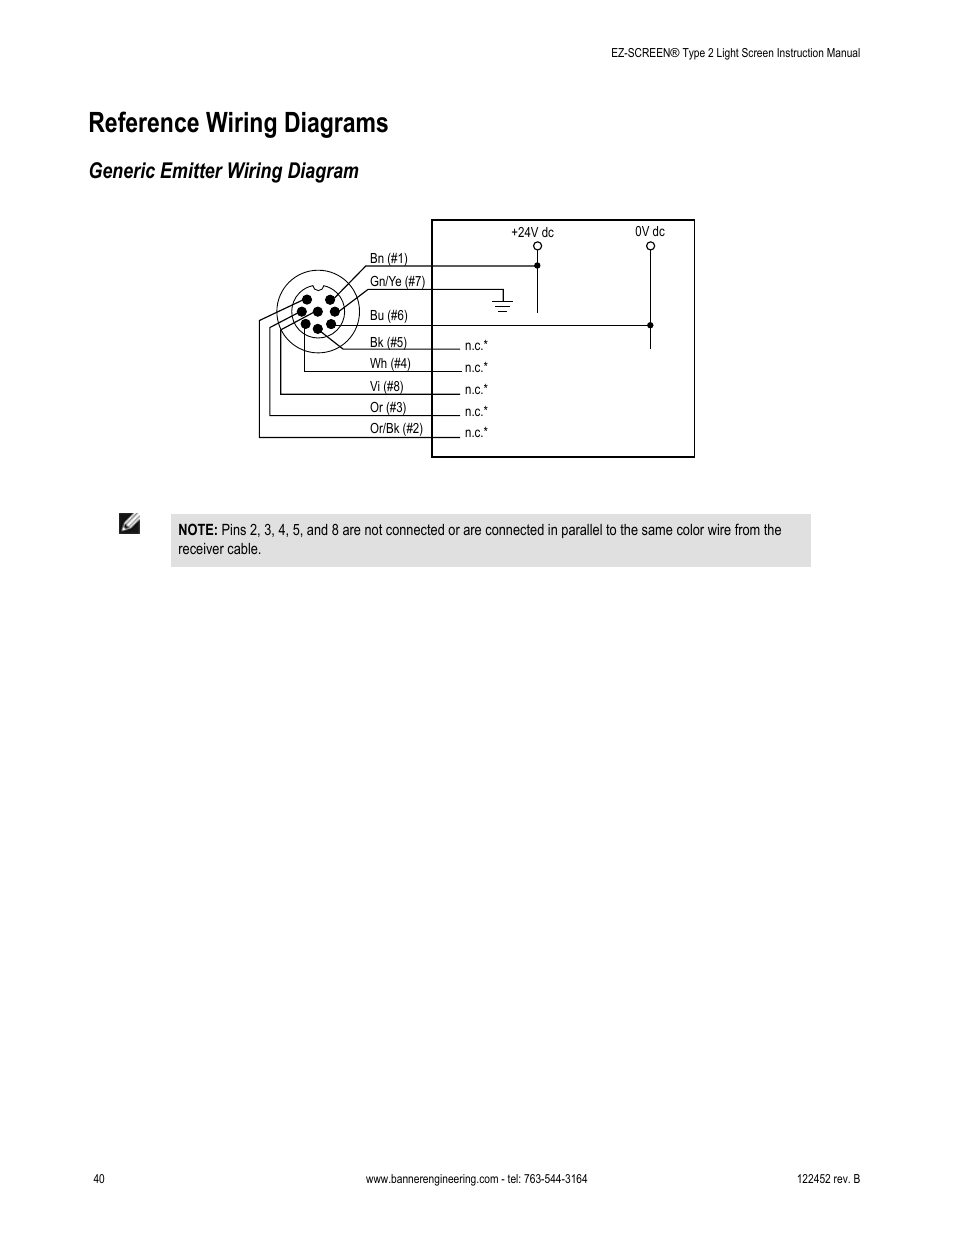 Reference Wiring Diagrams Generic Emitter Wiring Diagram